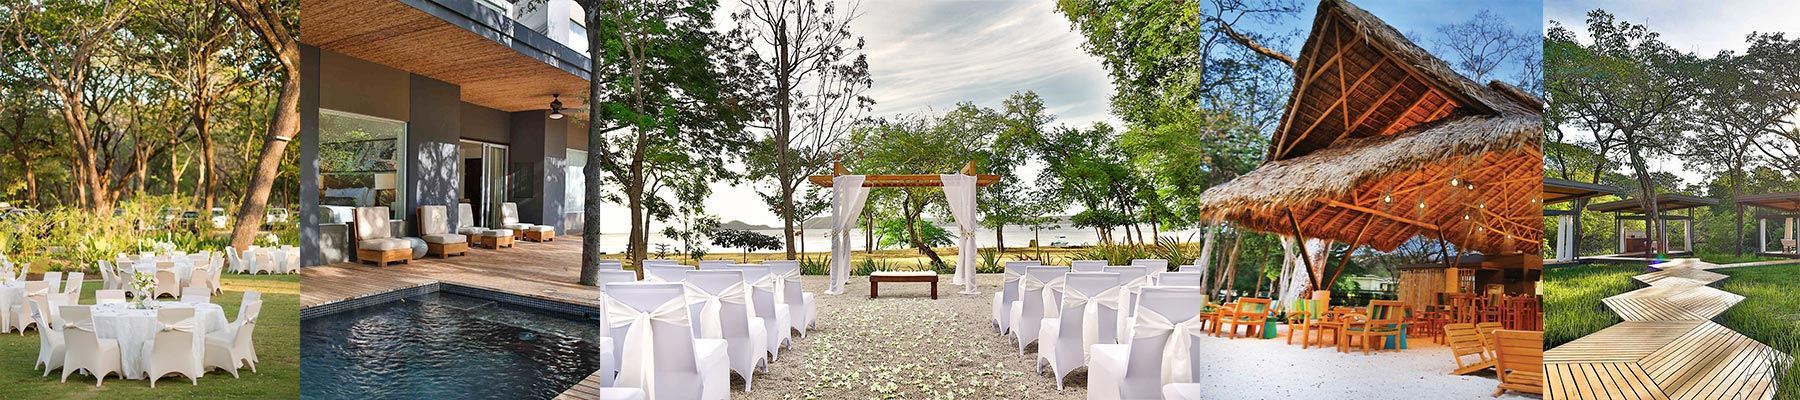 Enchanting El Mangroove Say I Do At This Incredible Beach Forest Wedding Venue